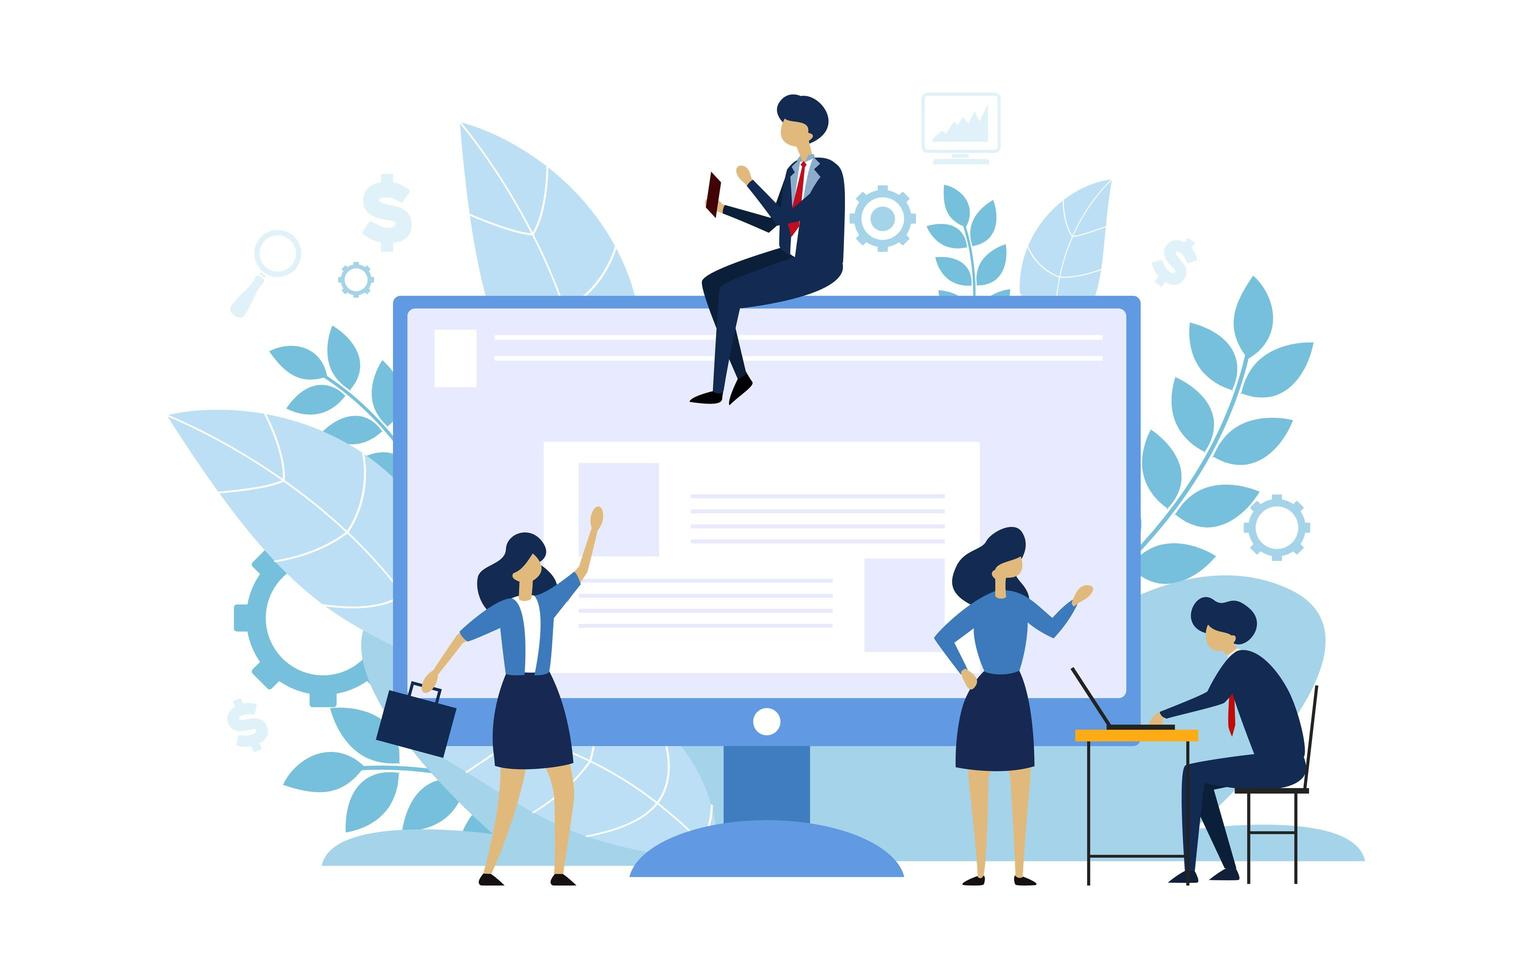 People Business Character With Activities vector